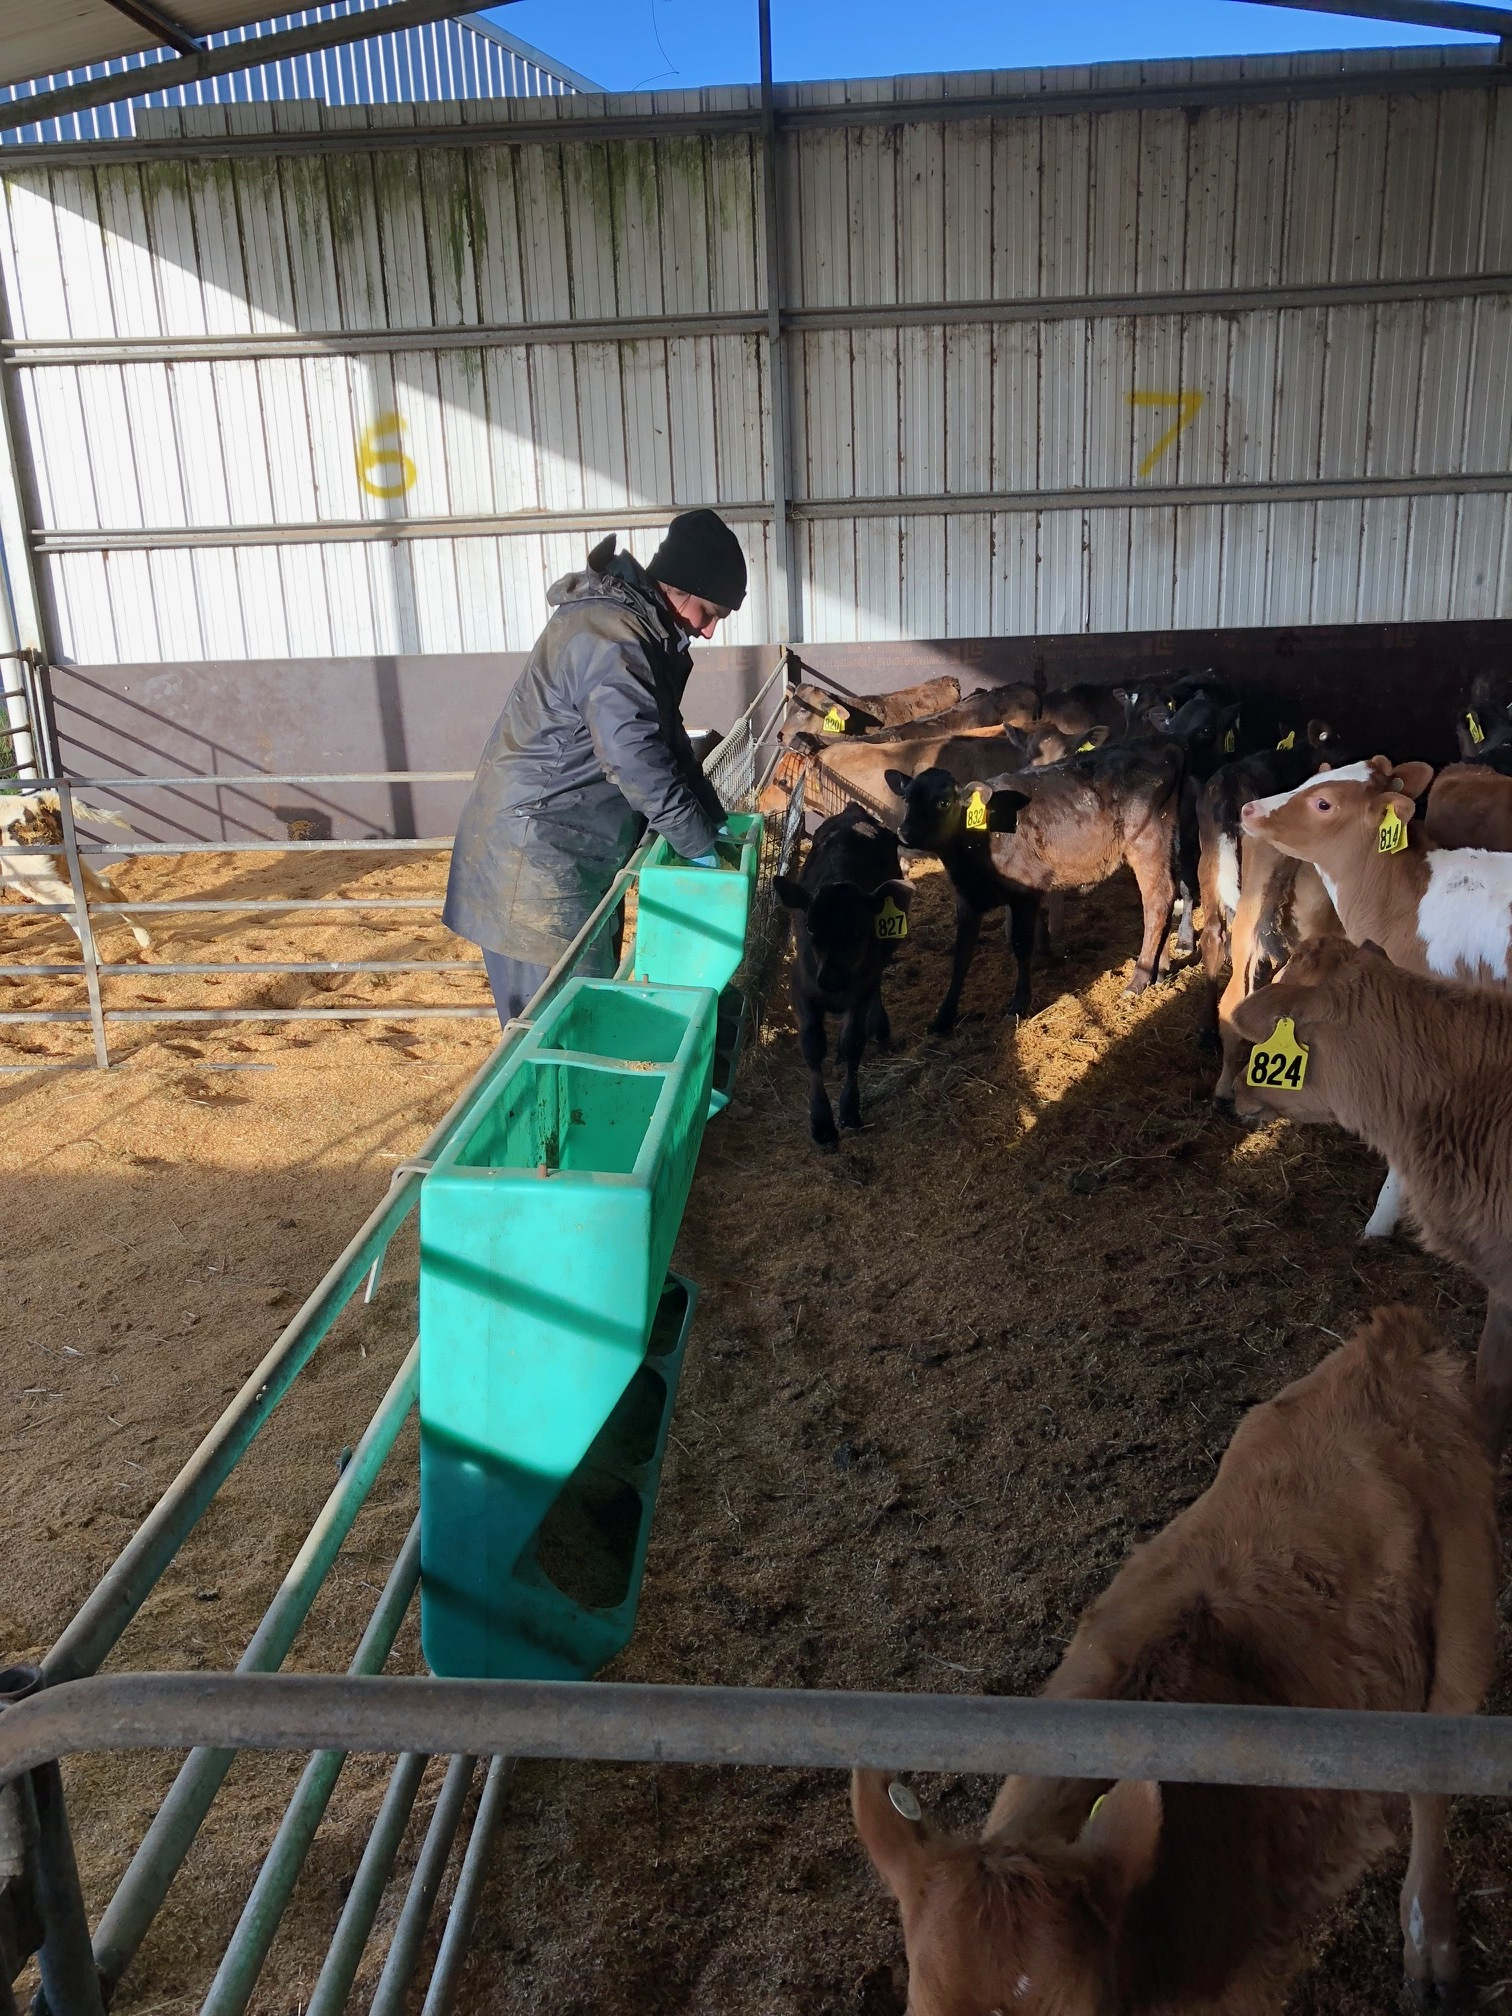 RIST Agricultural College Dairy Industry Victoria